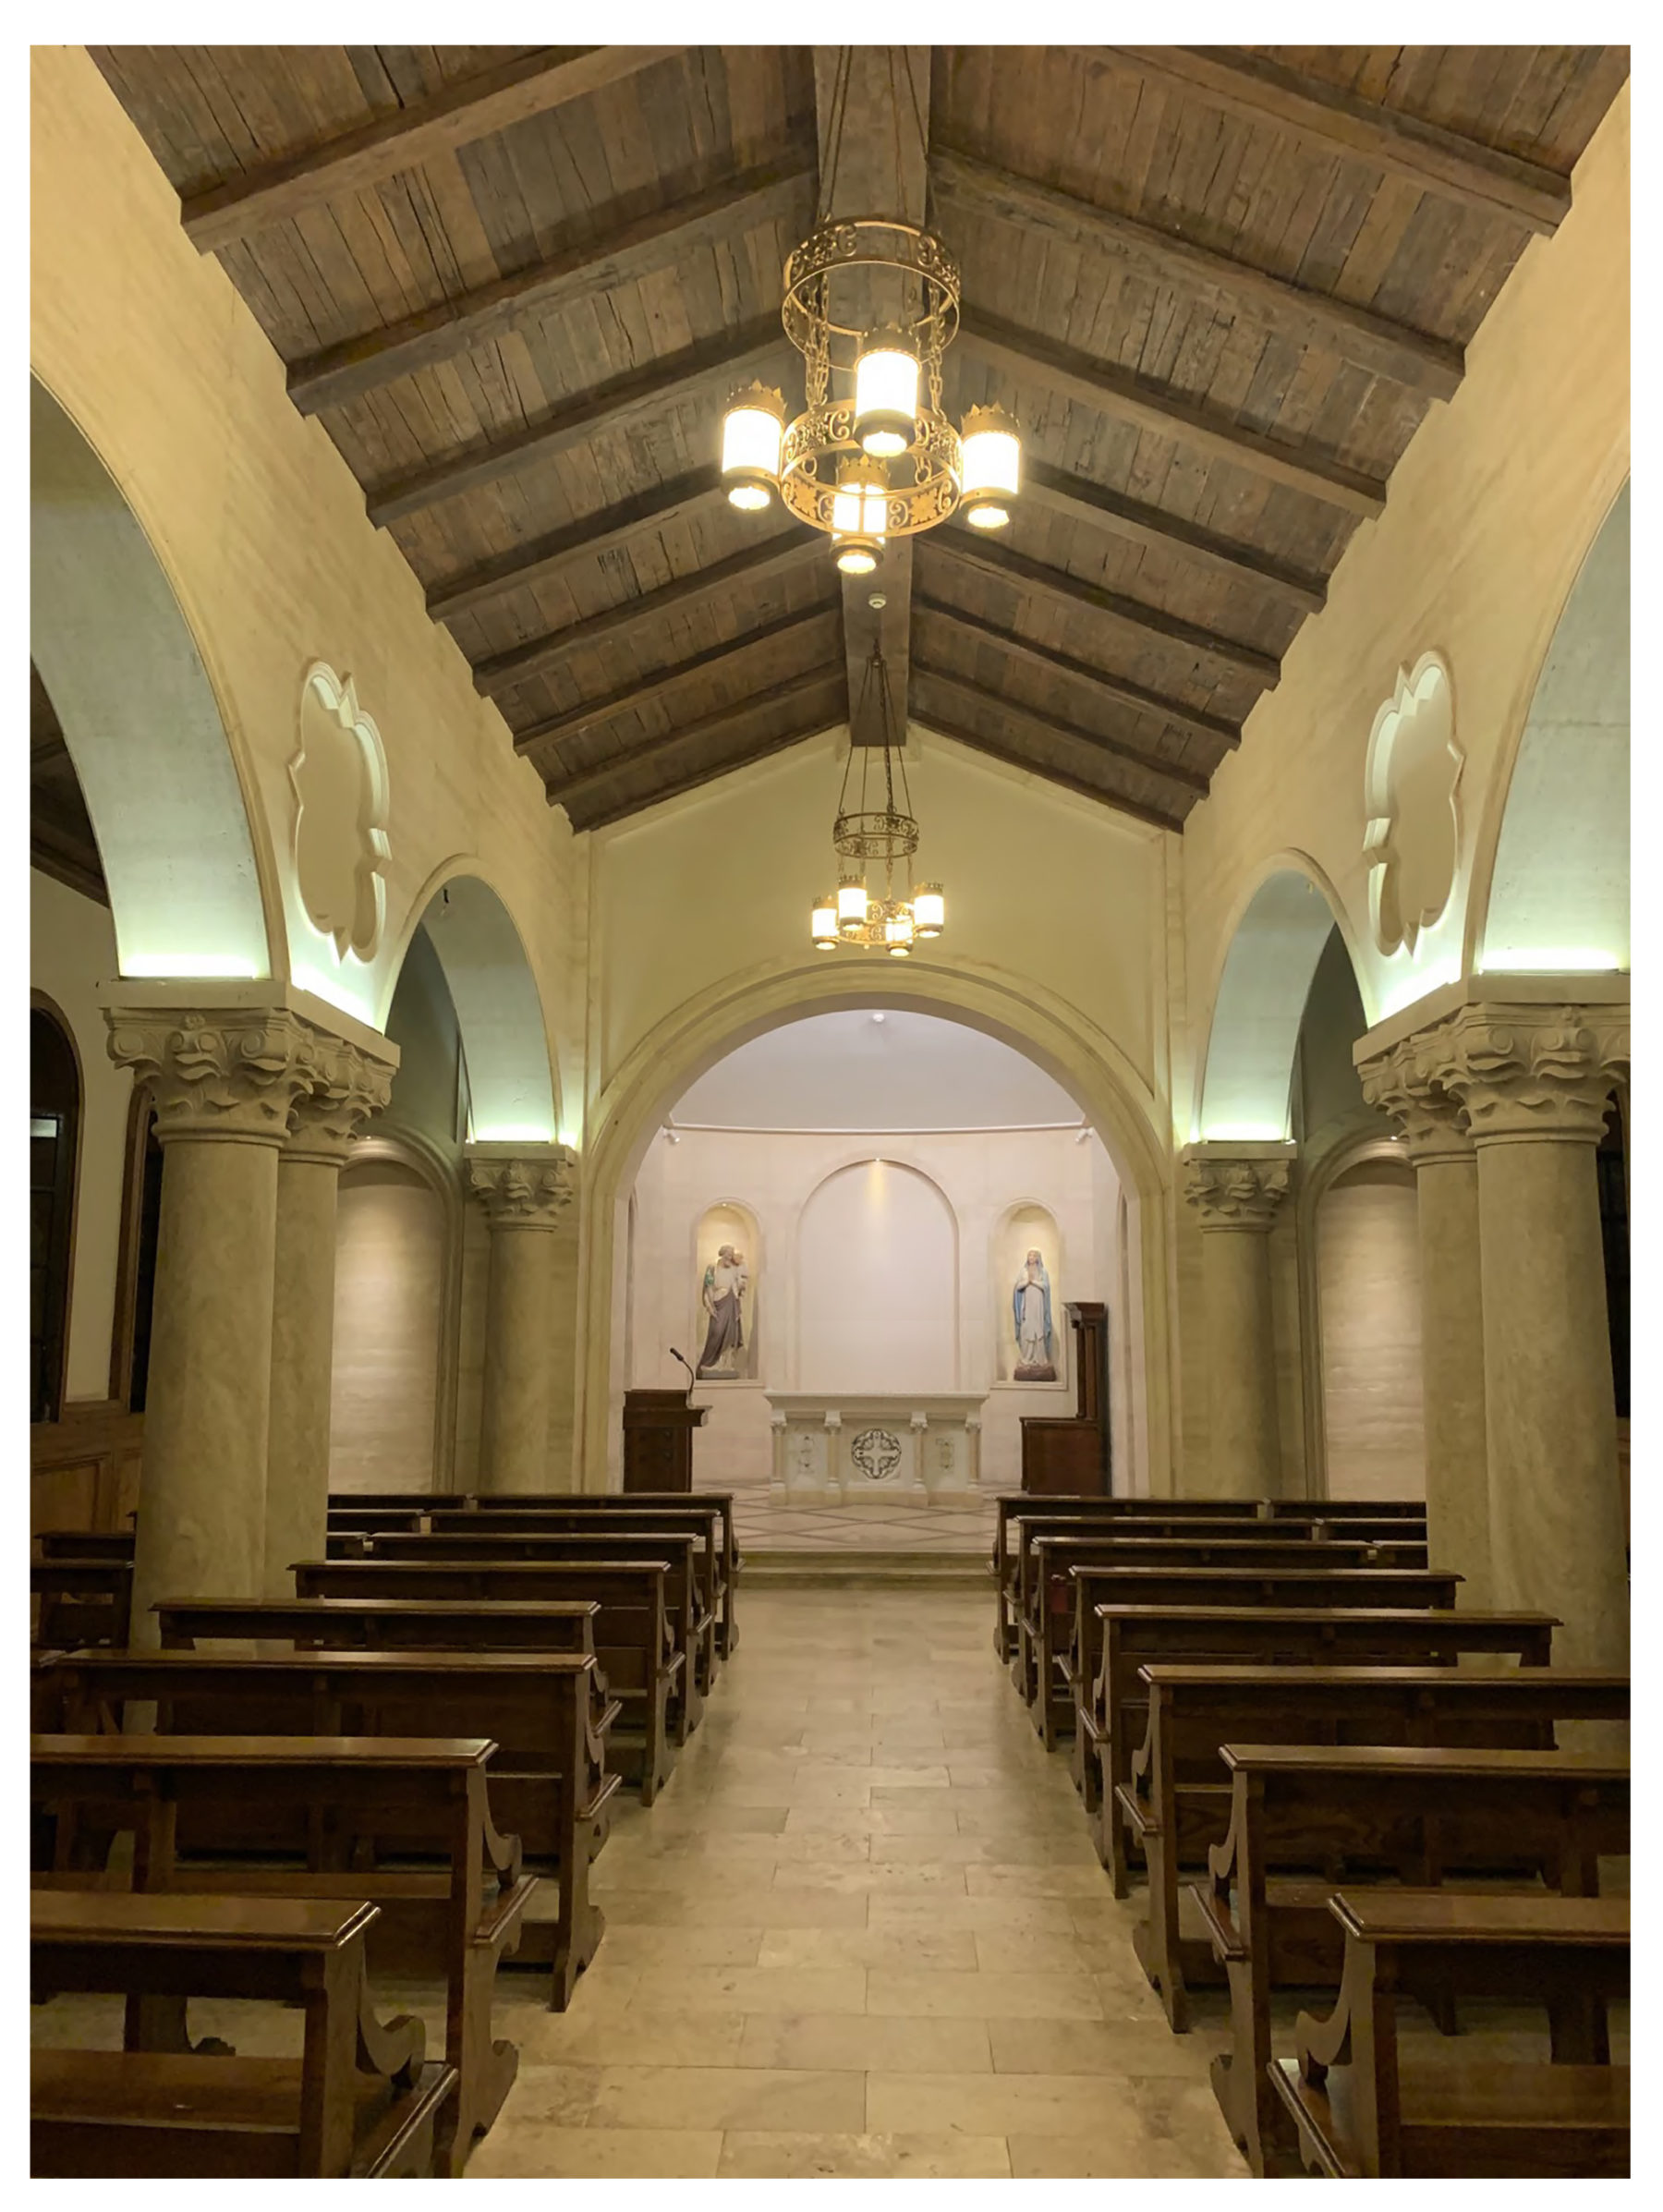 Wooden timber nave ceiling with arches on columns and ornate classical details wooden pews and stone by Harrison Design